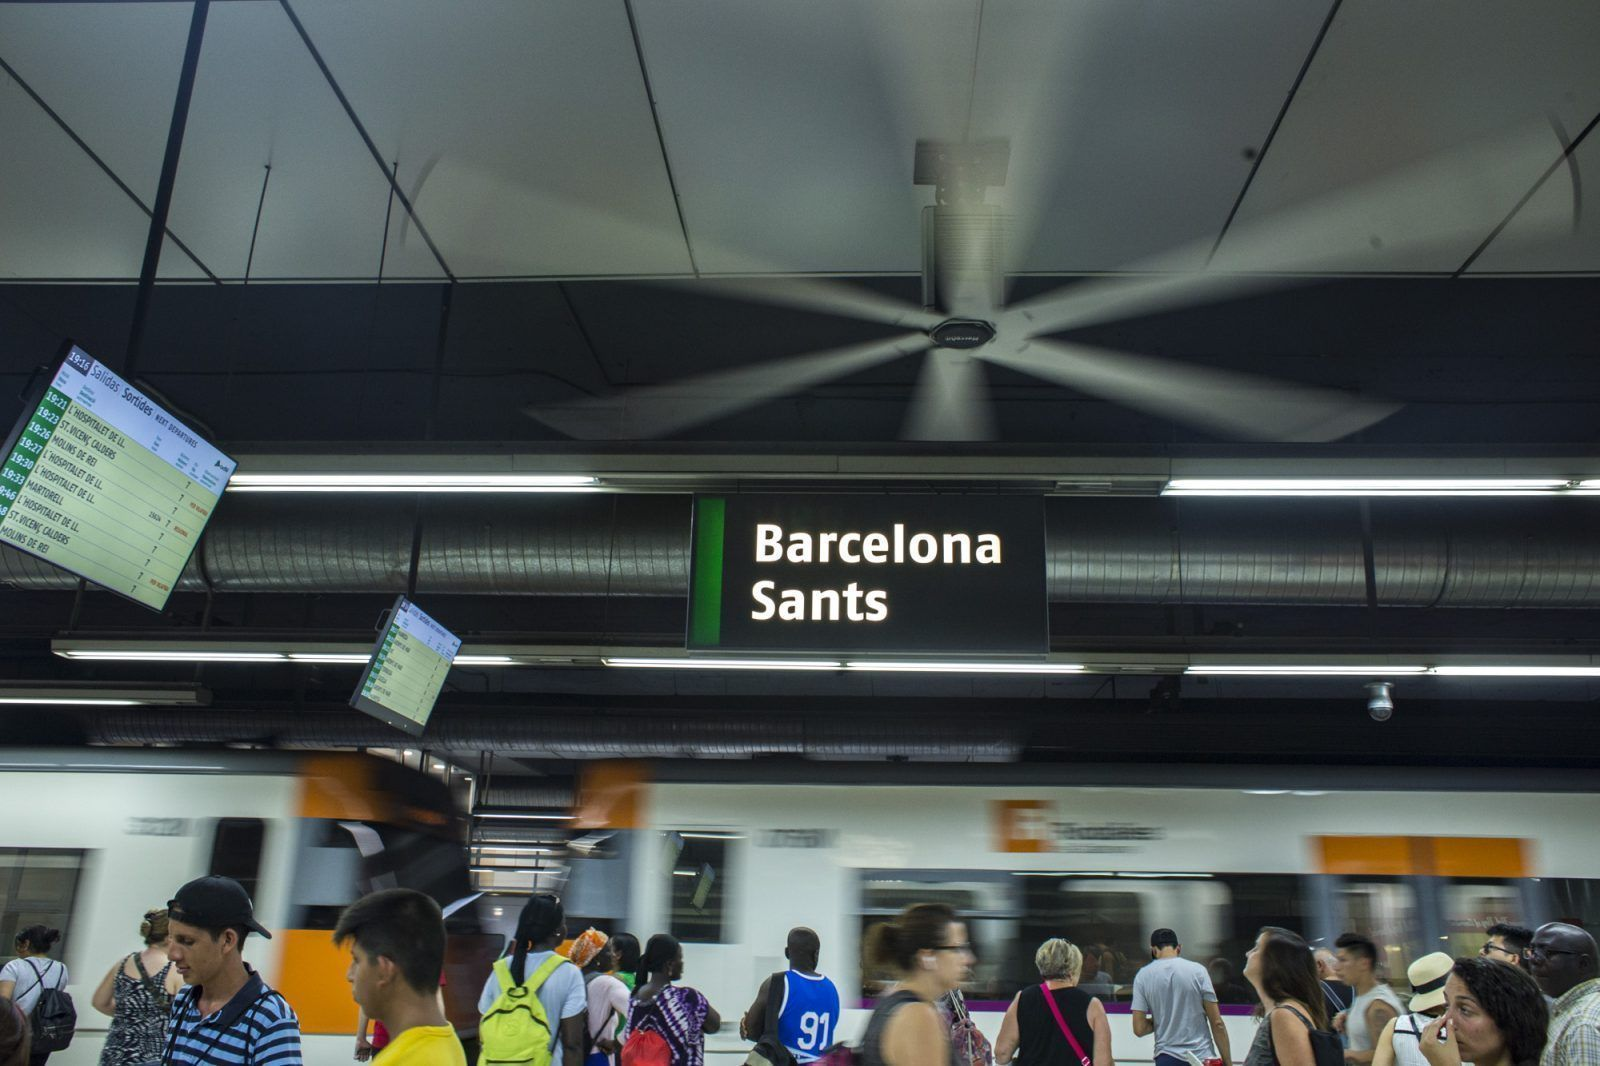 Barcelona Sants train station